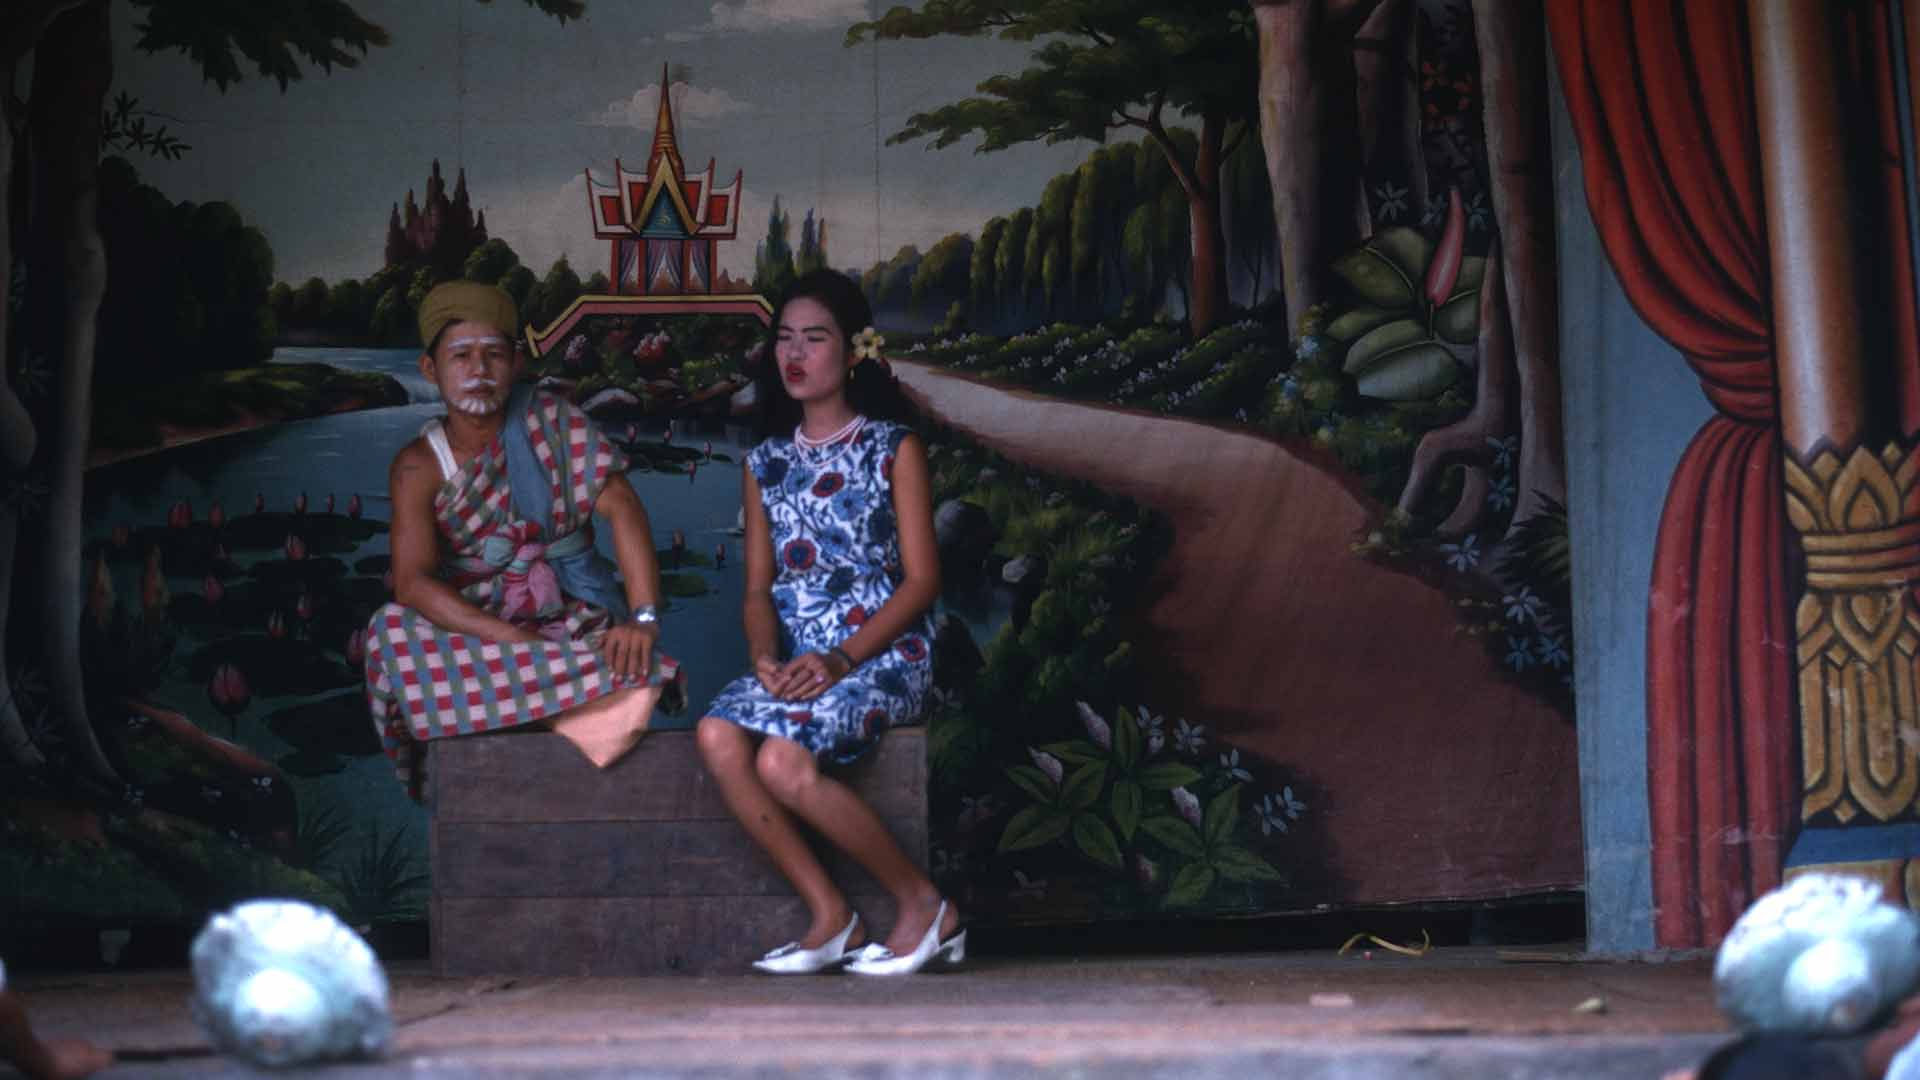 Two actors, a man and a woman, sit on a stage in front of a thai backdrop